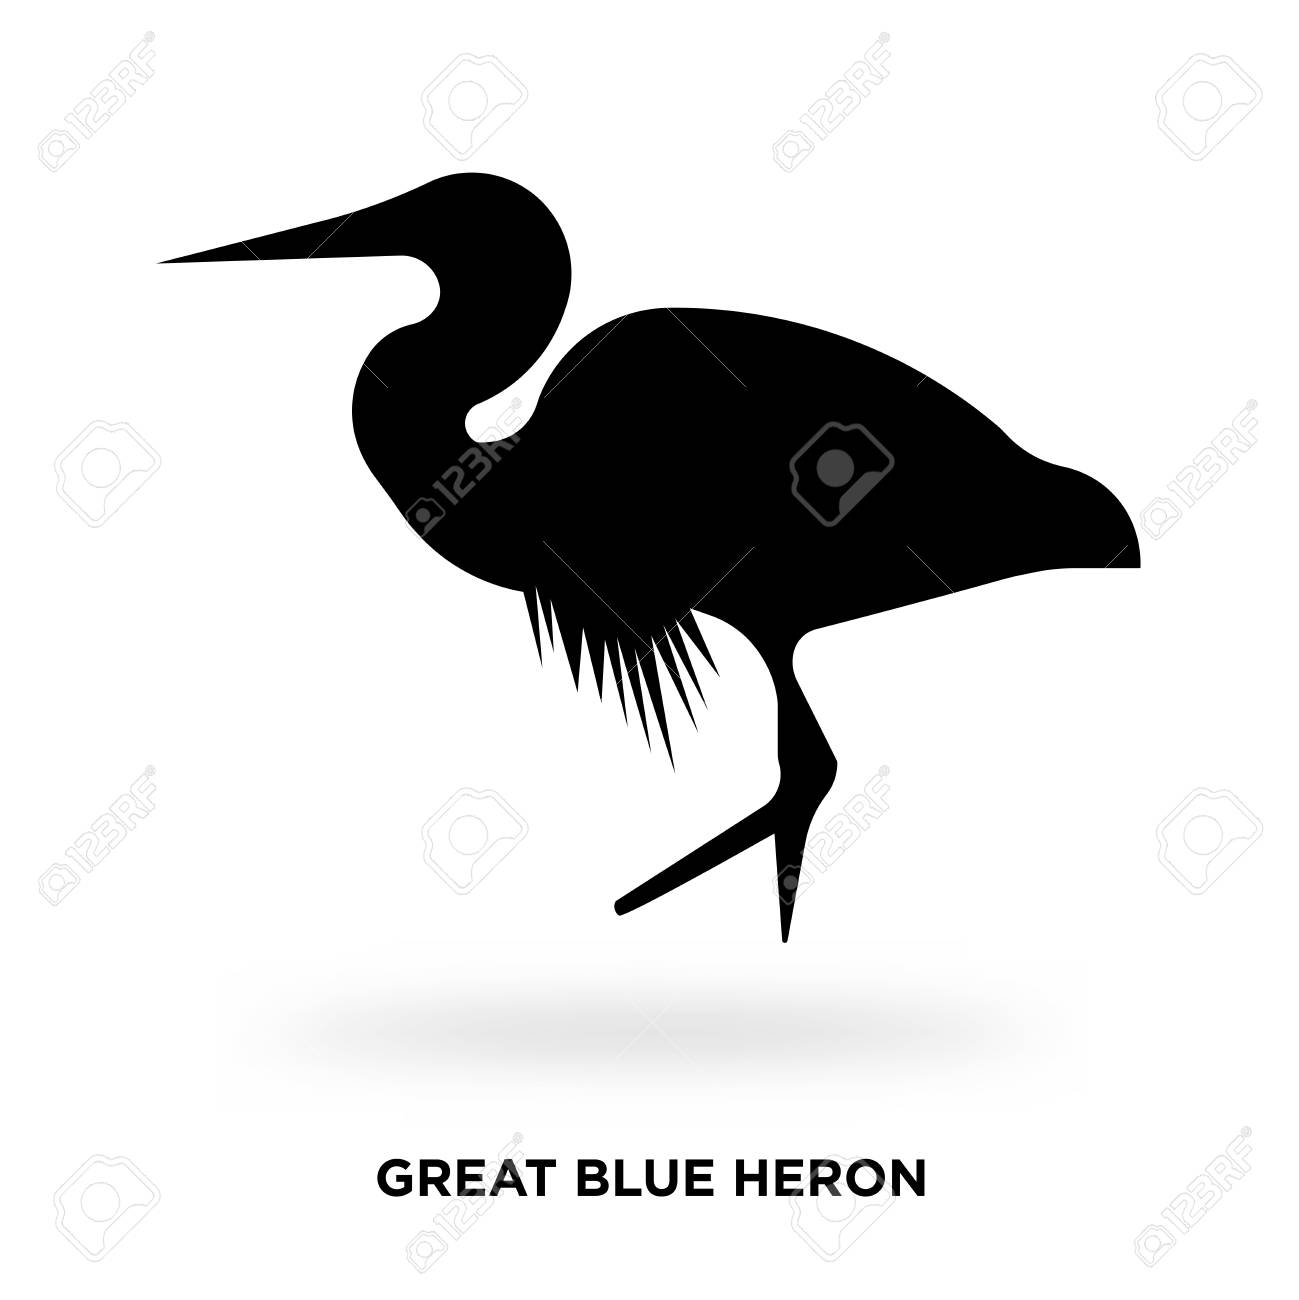 great blue heron silhouette vector illustration royalty free